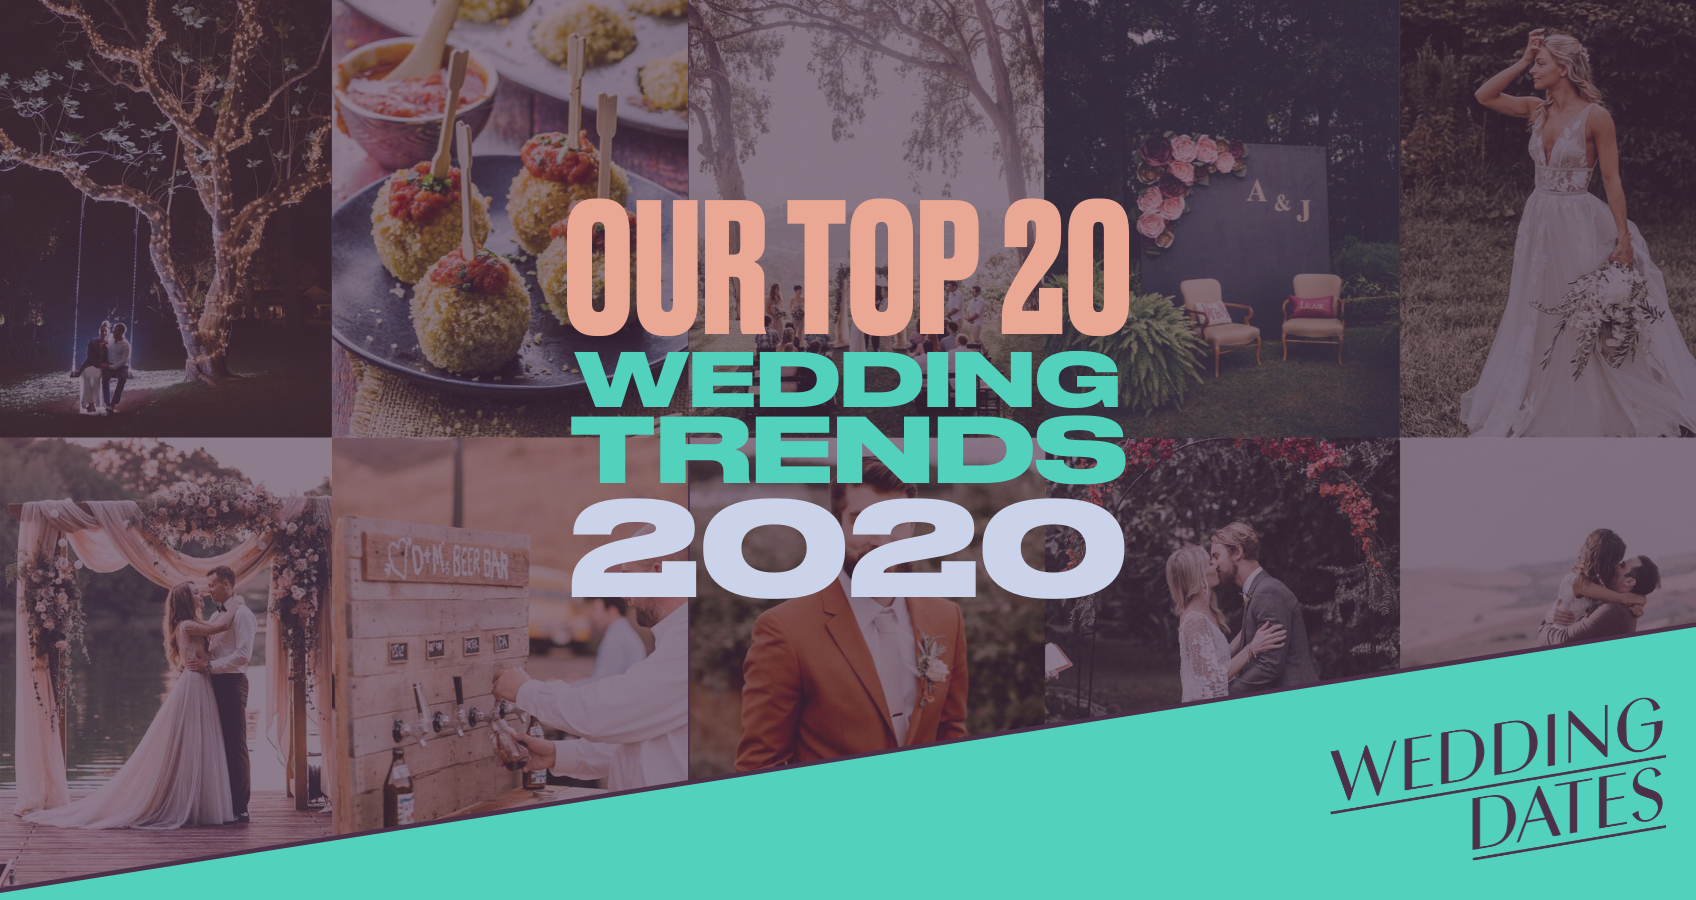 Our Top 20 Wedding Trends for 2020